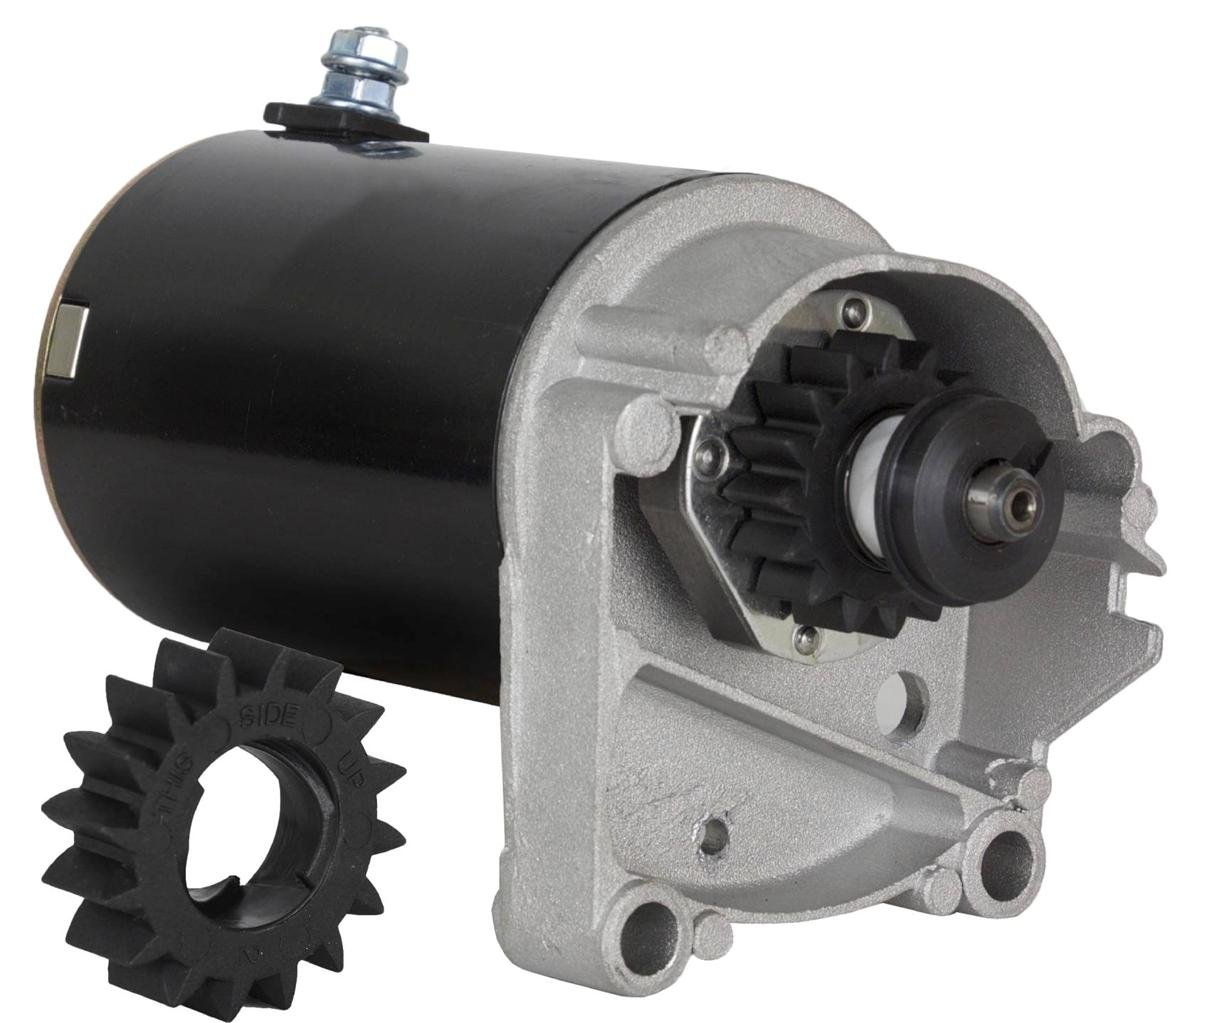 619zX5tazjL._SL1208_ amazon com starter motor briggs & stratton 14 16 18 hp starter  at eliteediting.co